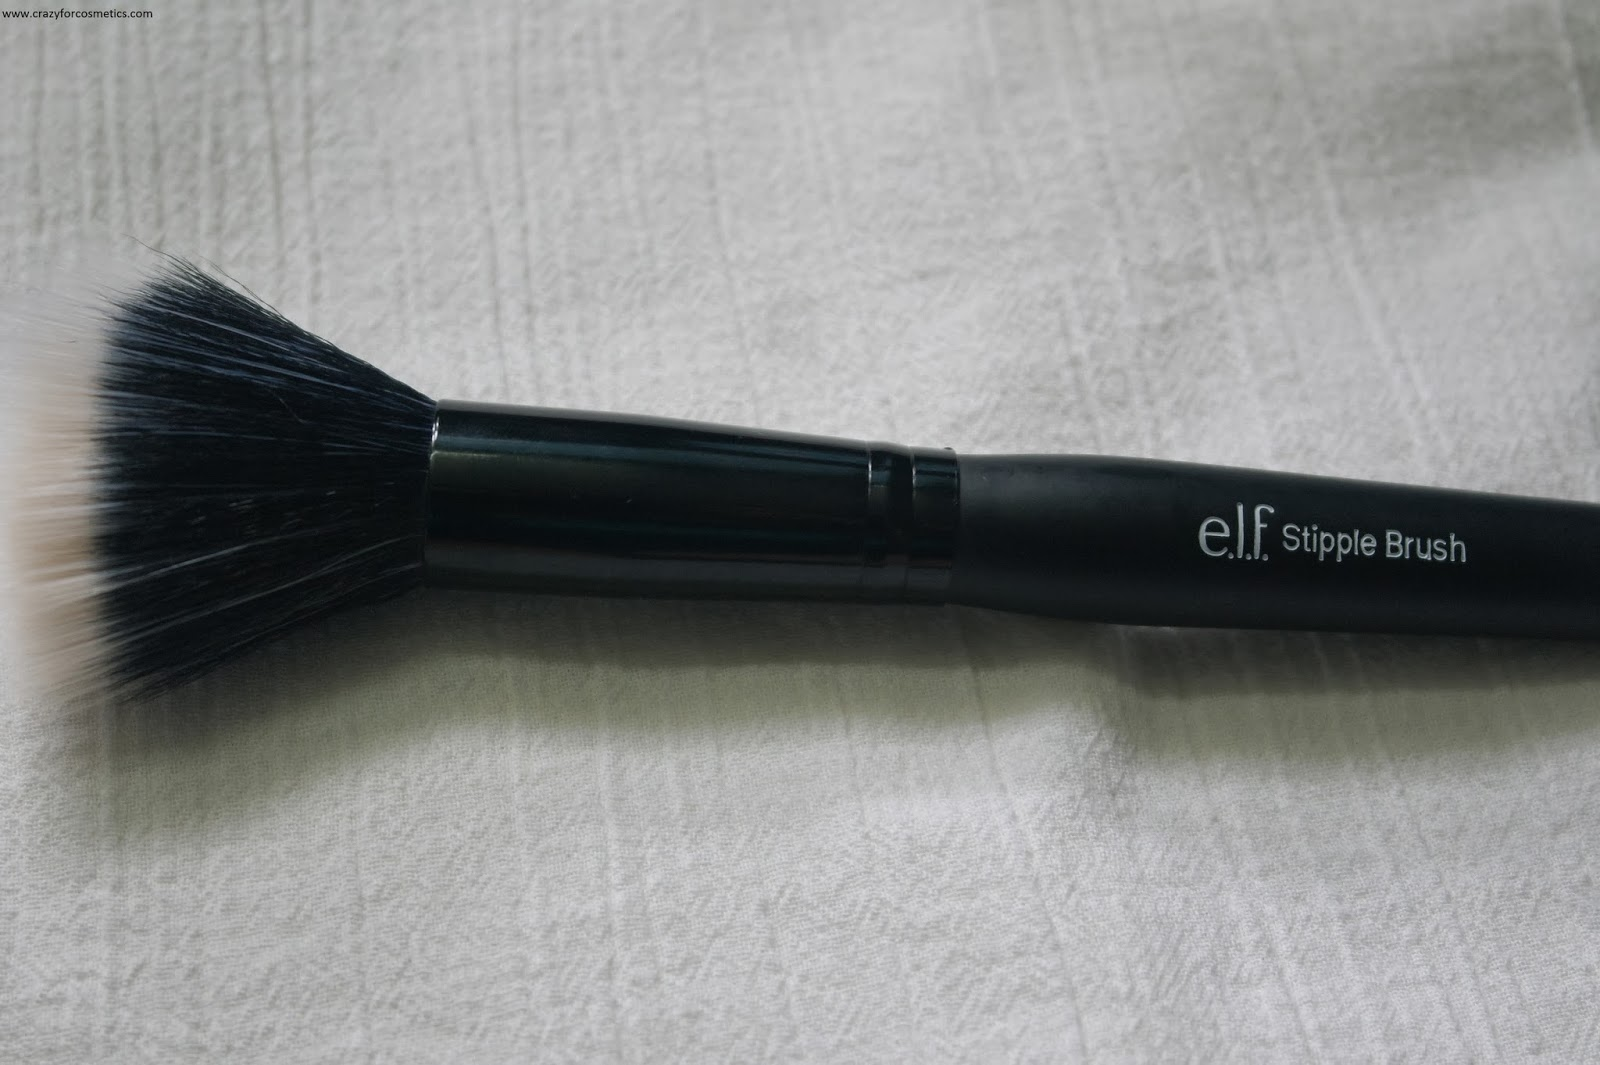 ELF Stipple Brush review- ELF Duo Fiber Brush review-Duo Fiber Brush review